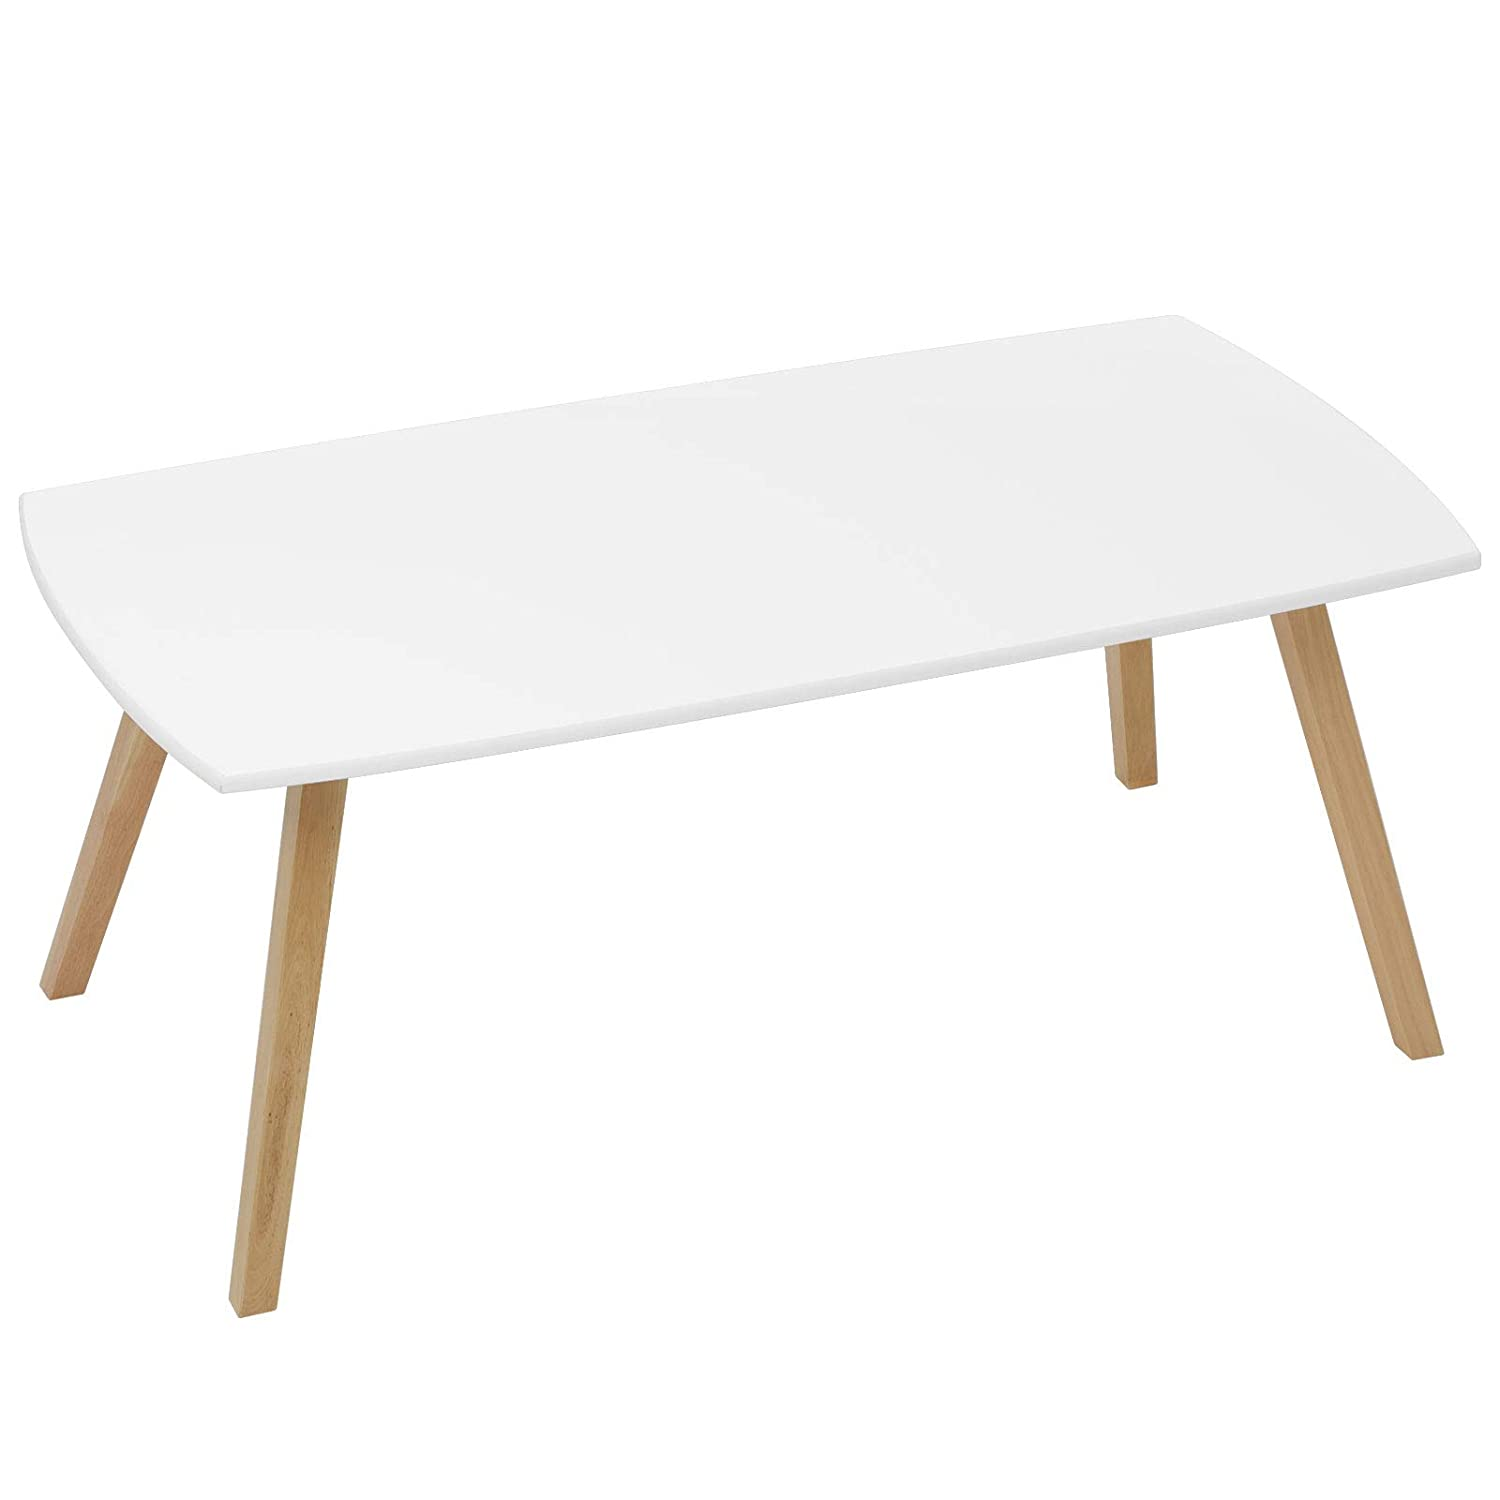 "SONGMICS Coffee/Cocktail Table with Solid Rubber Wood Legs, Minimalism, 43.3"" L x 21.7"" W x 17.7"" H, White, ULCT90WT"